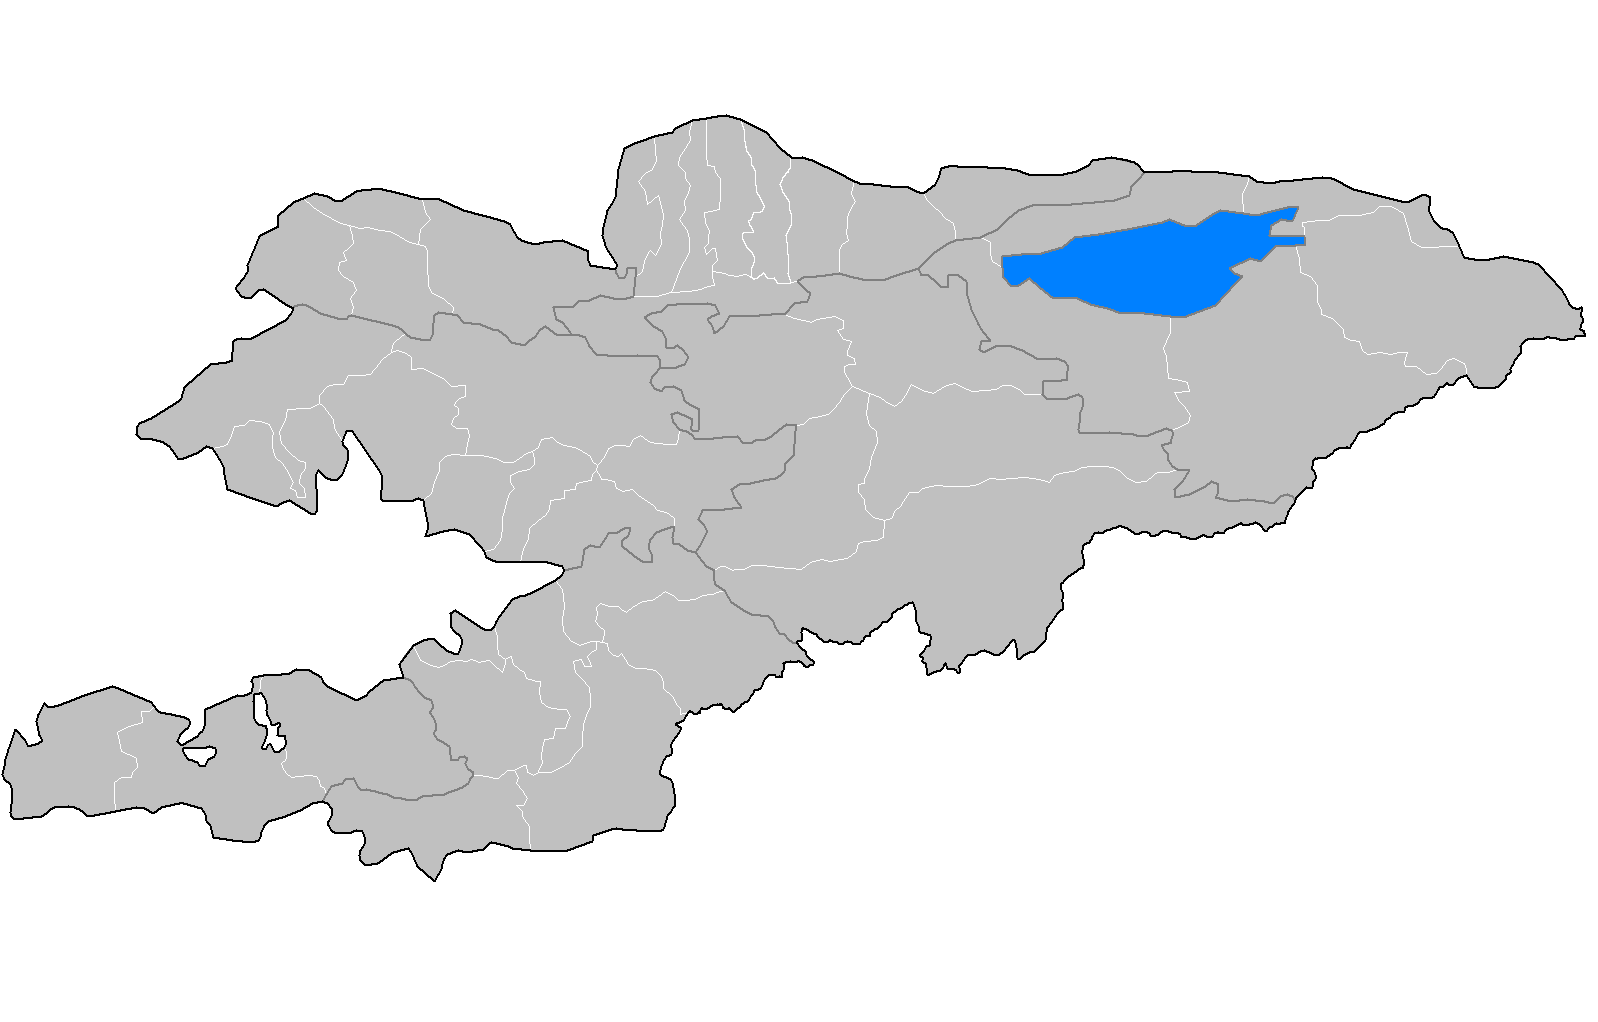 FileKyrgyzstan Raionspng Wikimedia Commons - Kyrgyzstan map